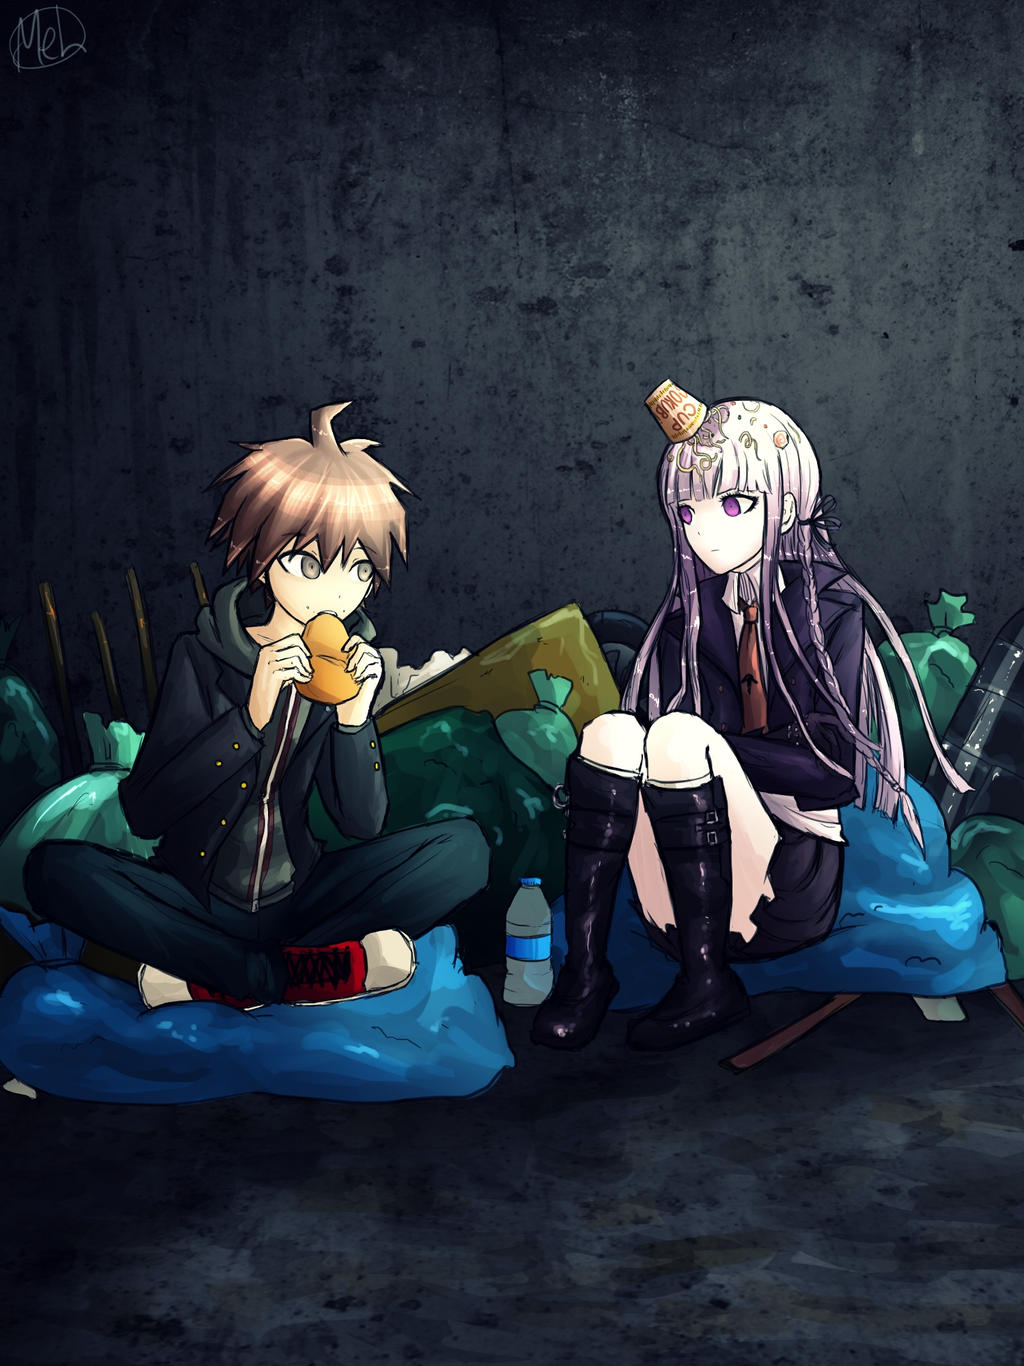 Dangan Ronpa - Naegi and Kirigiri by MelSpontaneus